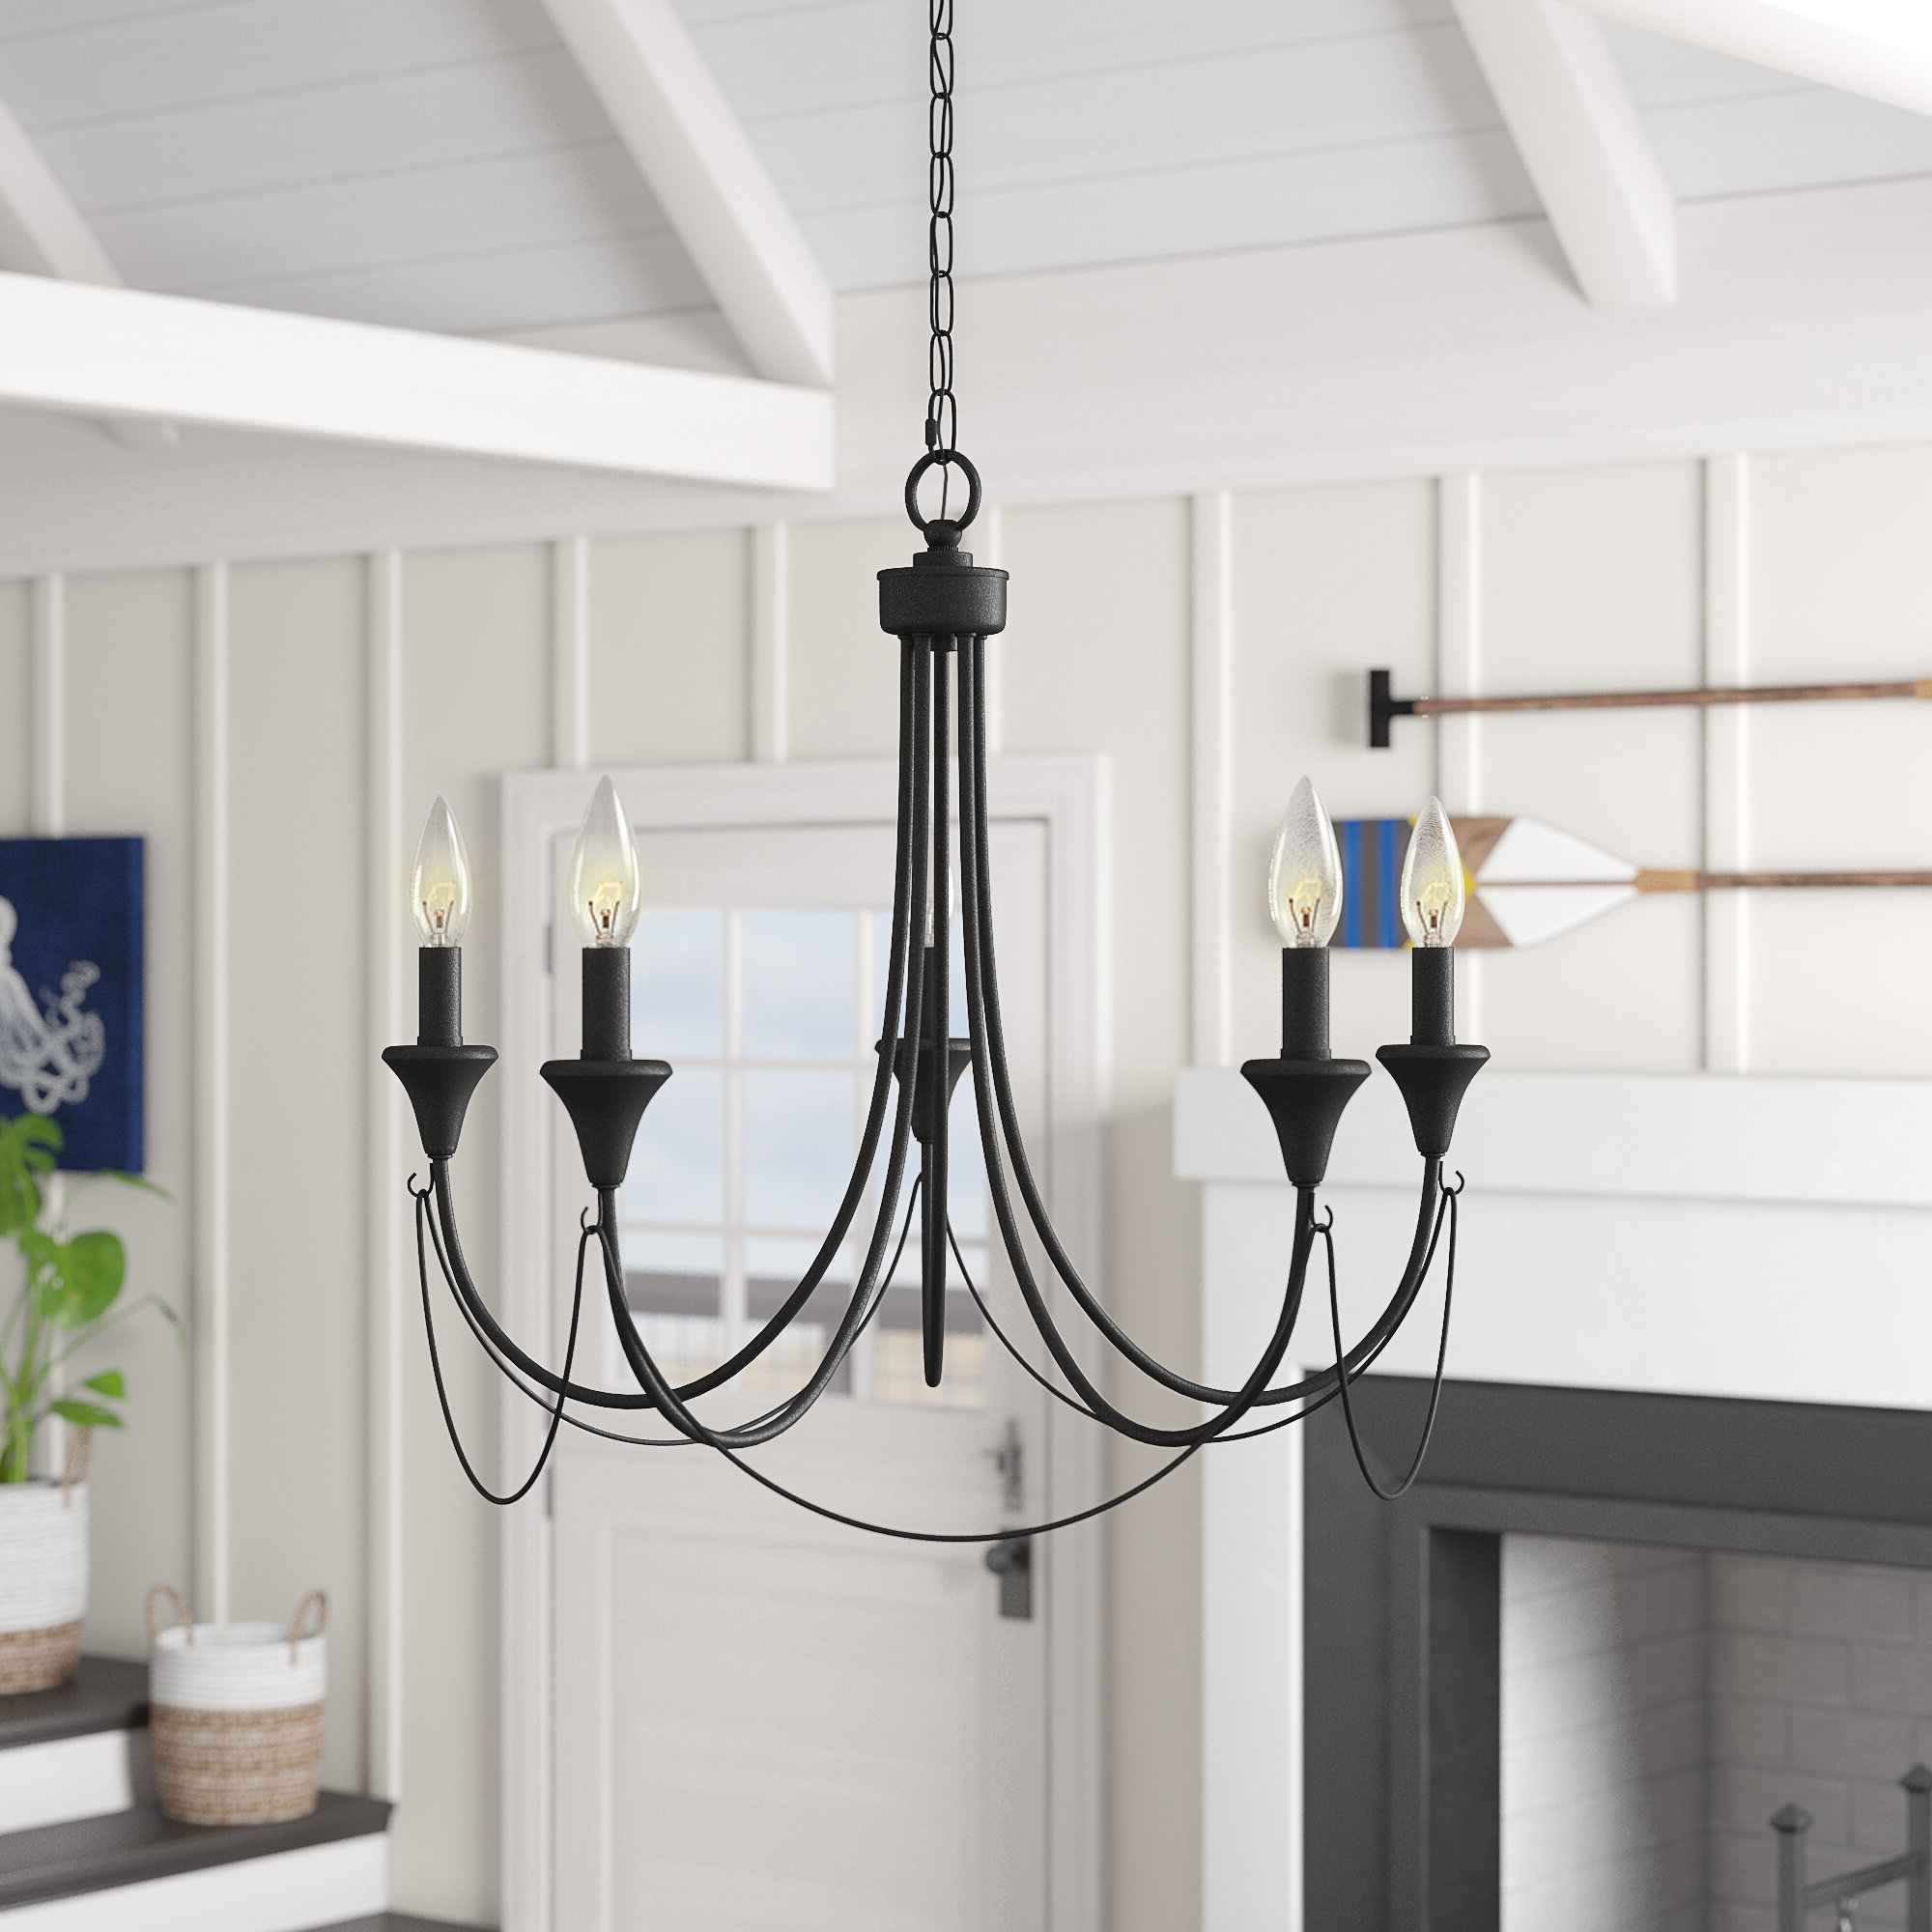 Walczak 5 Light Candle Style Chandelier For Most Current Florentina 5 Light Candle Style Chandeliers (View 8 of 25)